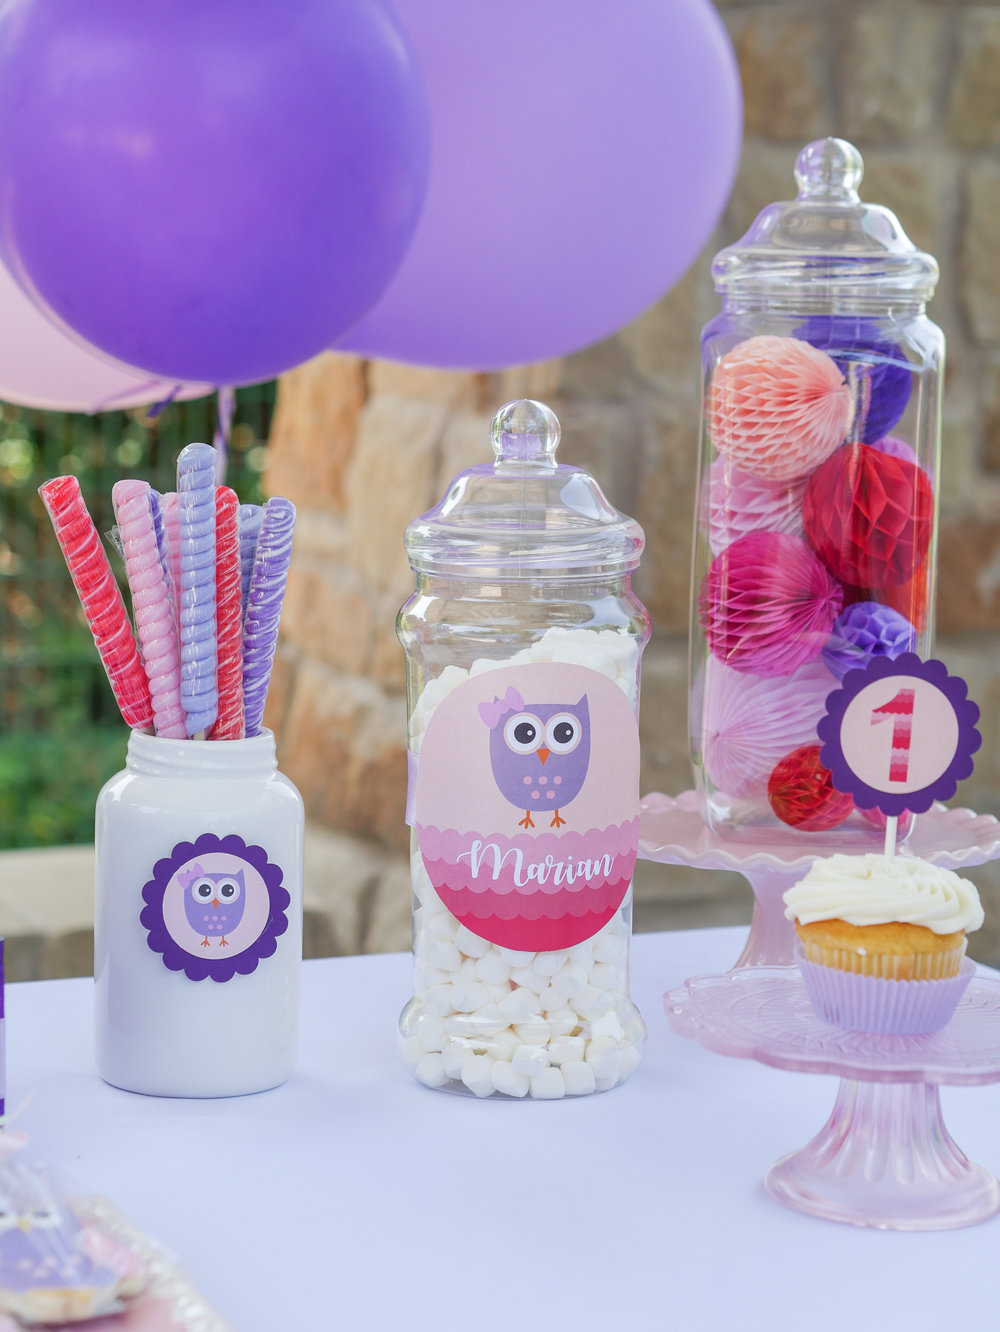 Sweet treats at an Austin, Texas birthday party. Full details on this owl themed first birthday party can be found on www.minteventdesign.com. See over 10 creative party ideas in the Owl First Birthday Party by party stylist Mint Event Design in Austin, TX - including lollipops, marshmallows and gumballs. #birthdayparty #partyideas #partyinspiration #owl #firstbirthday #partytreats #partygoods #partysweets